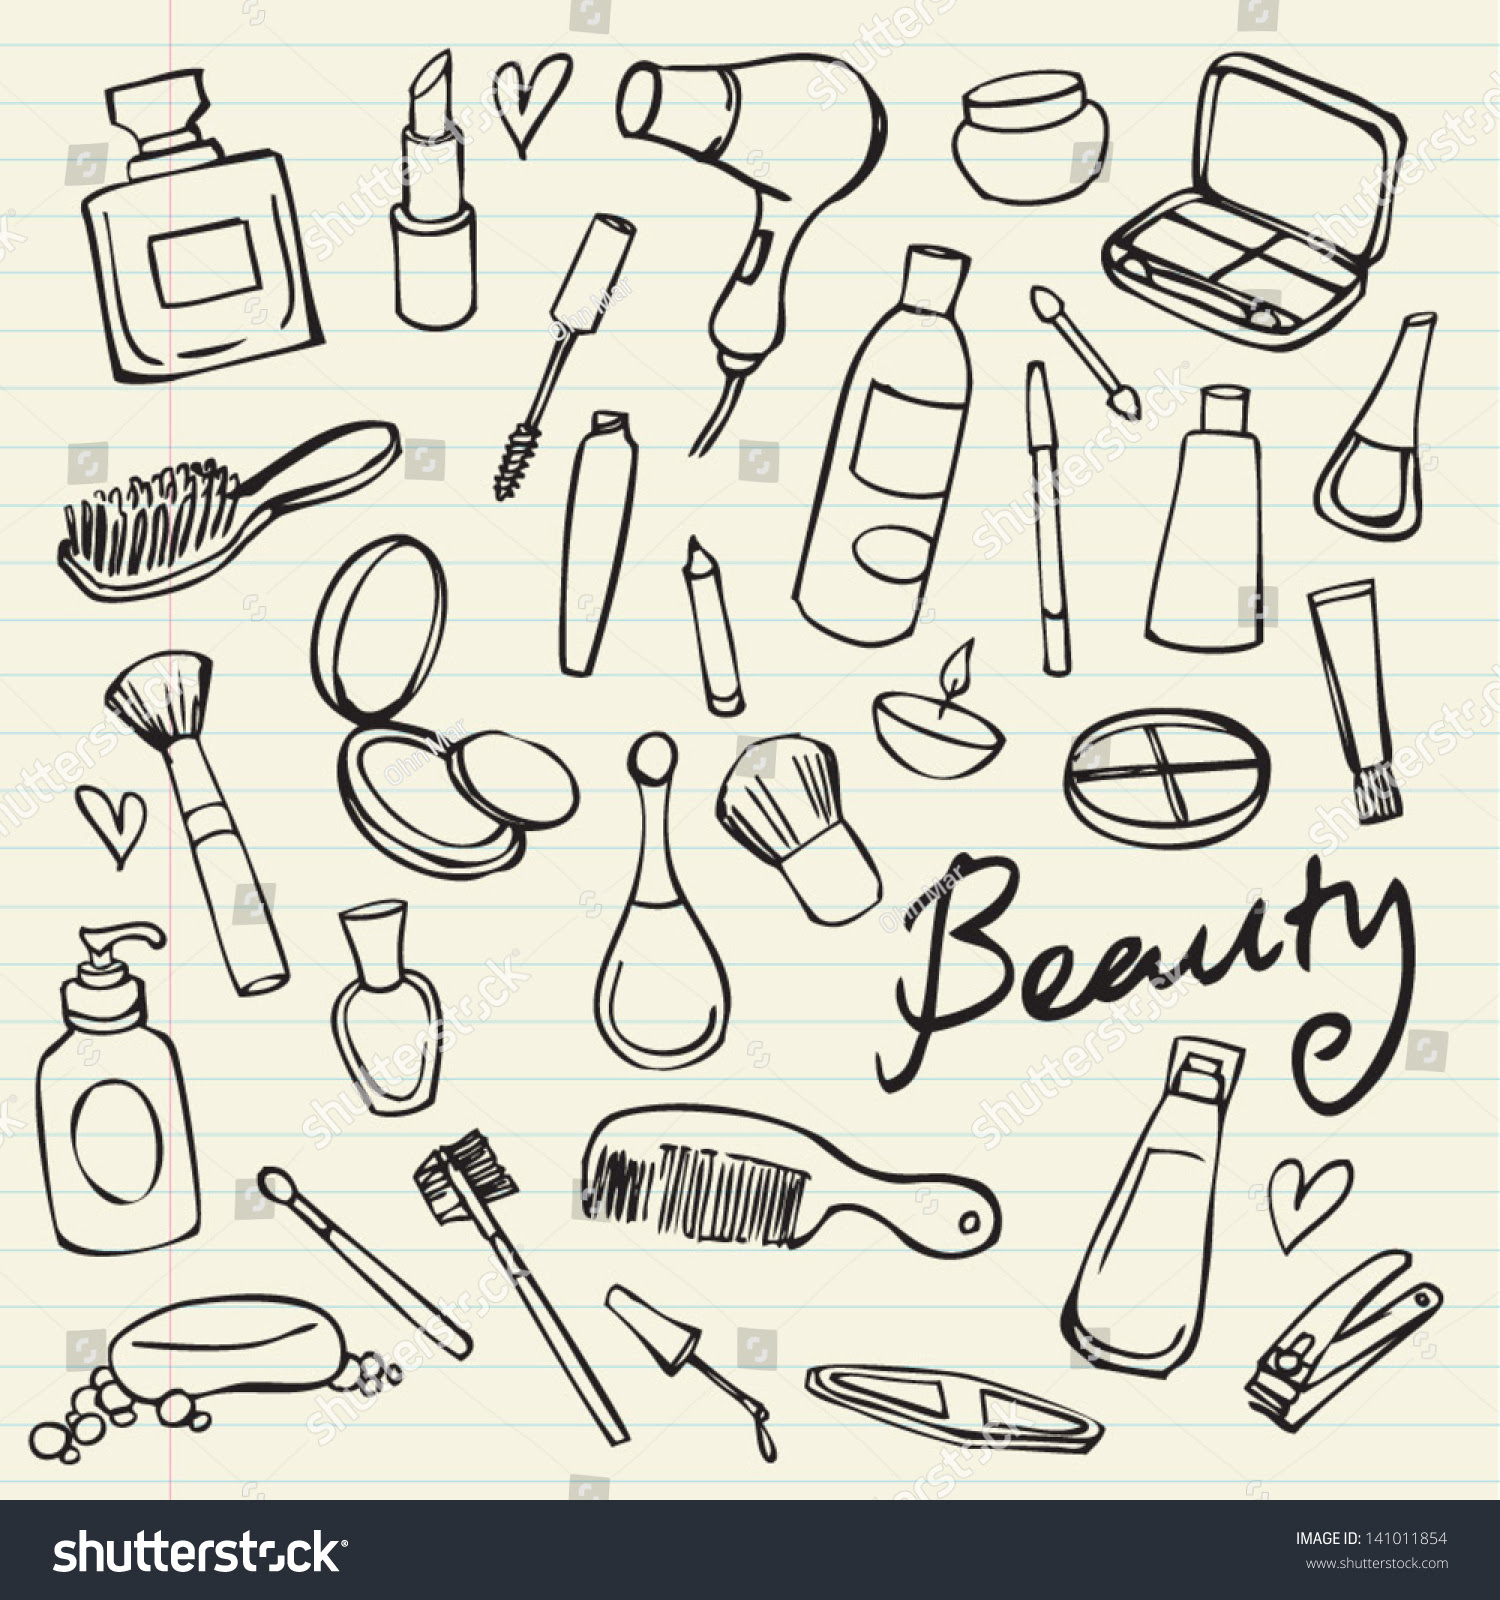 http://image.shutterstock.com/z/stock-vector-beauty-cosmetics-icons-vector-doodles-141011854.jpg